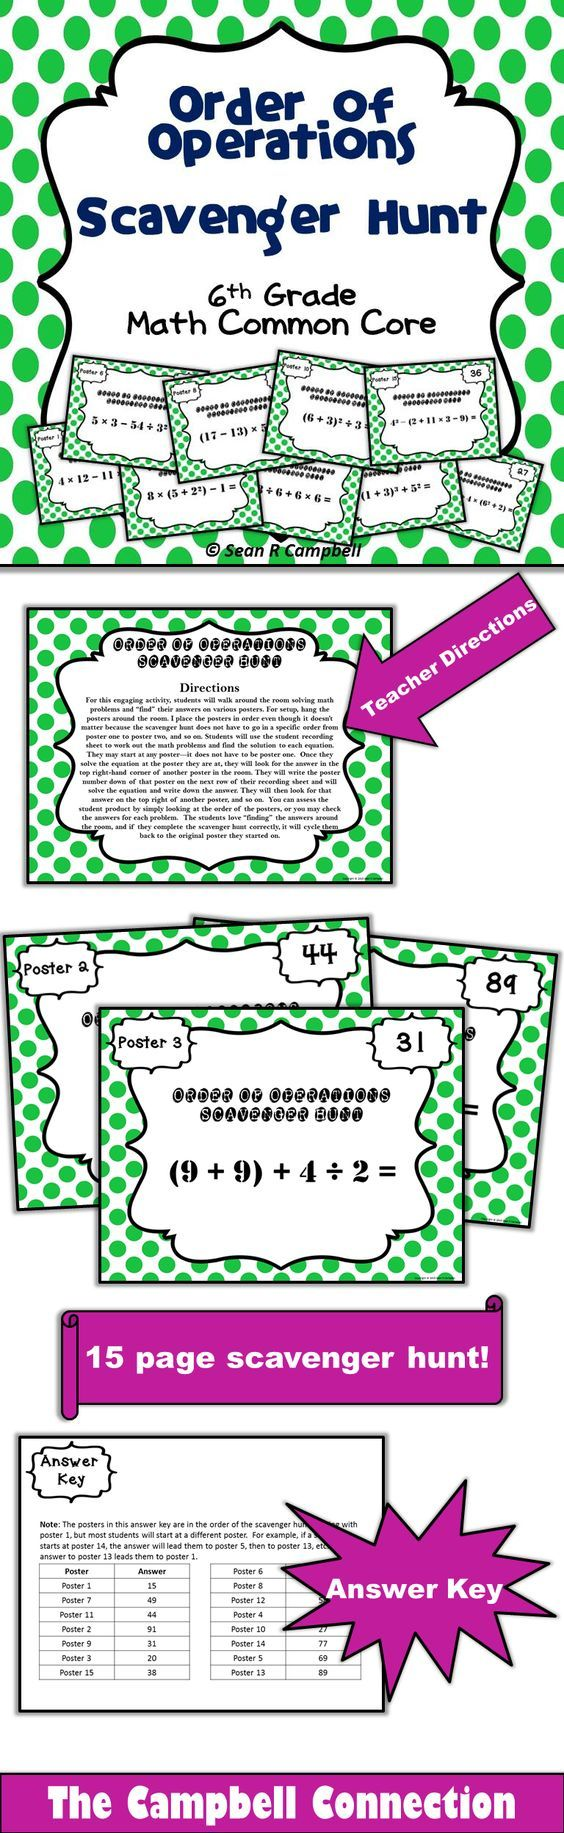 24 best order of operations images on Pinterest | High school maths ...